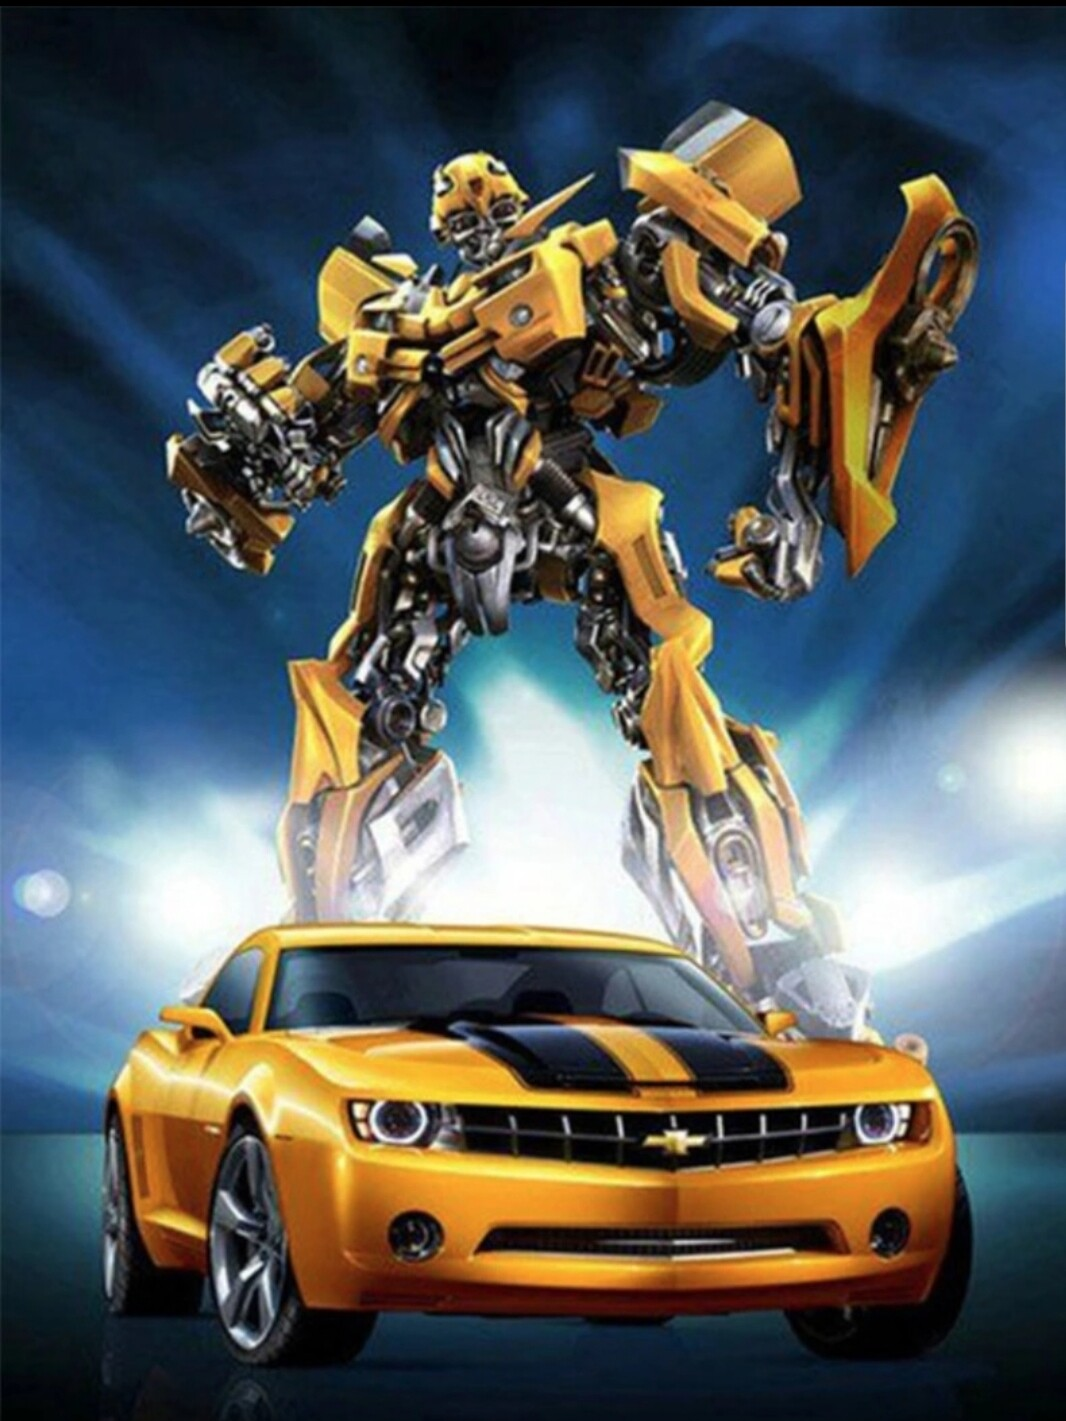 Bumblebee - 40 x 50cm Full Drill (Round), Diamond Painting Kit - Currently in stock